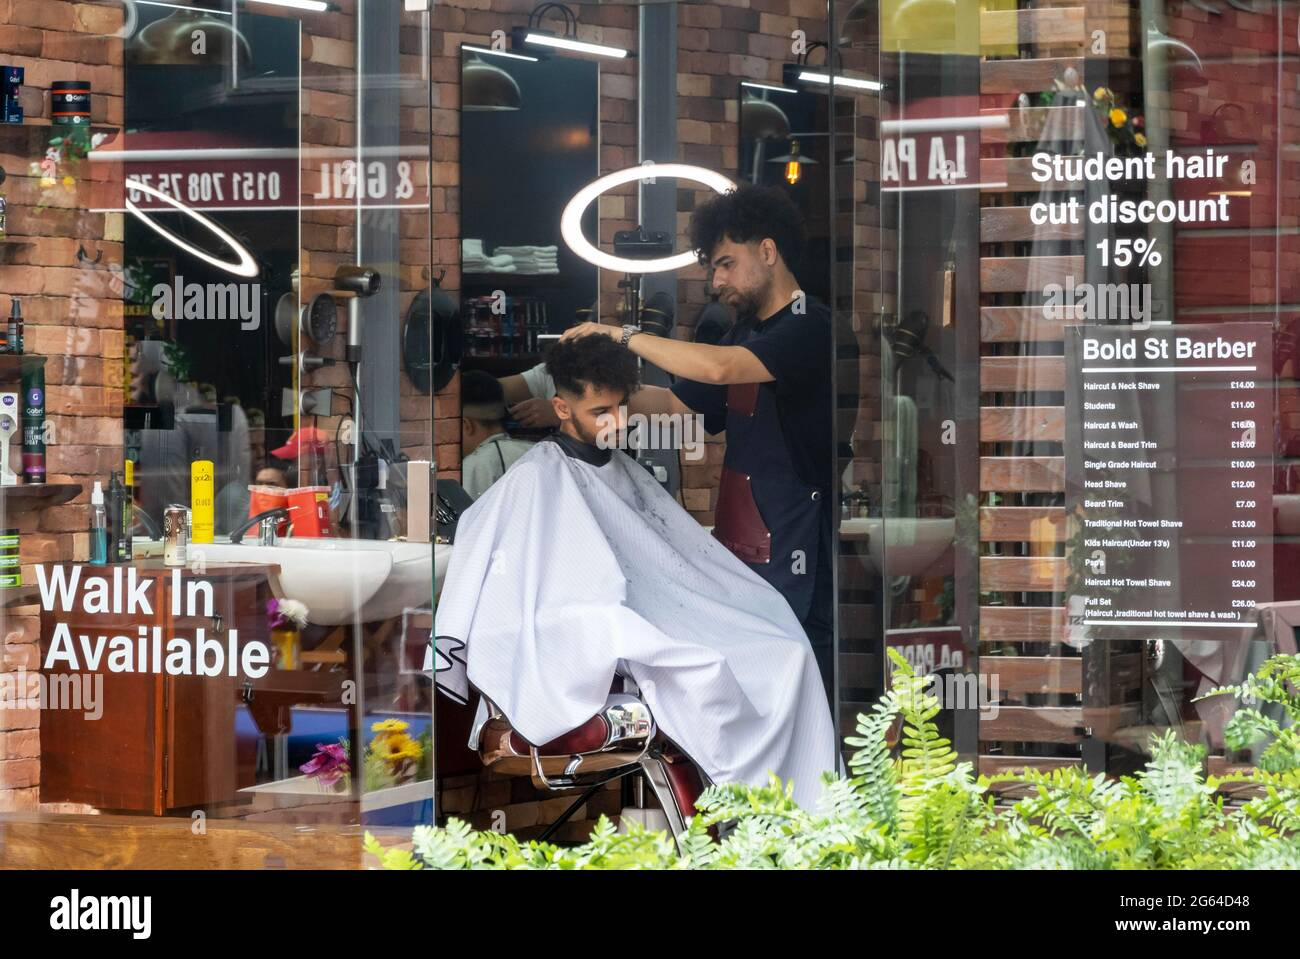 bold-st-barber-on-bold-street-in-liverpo